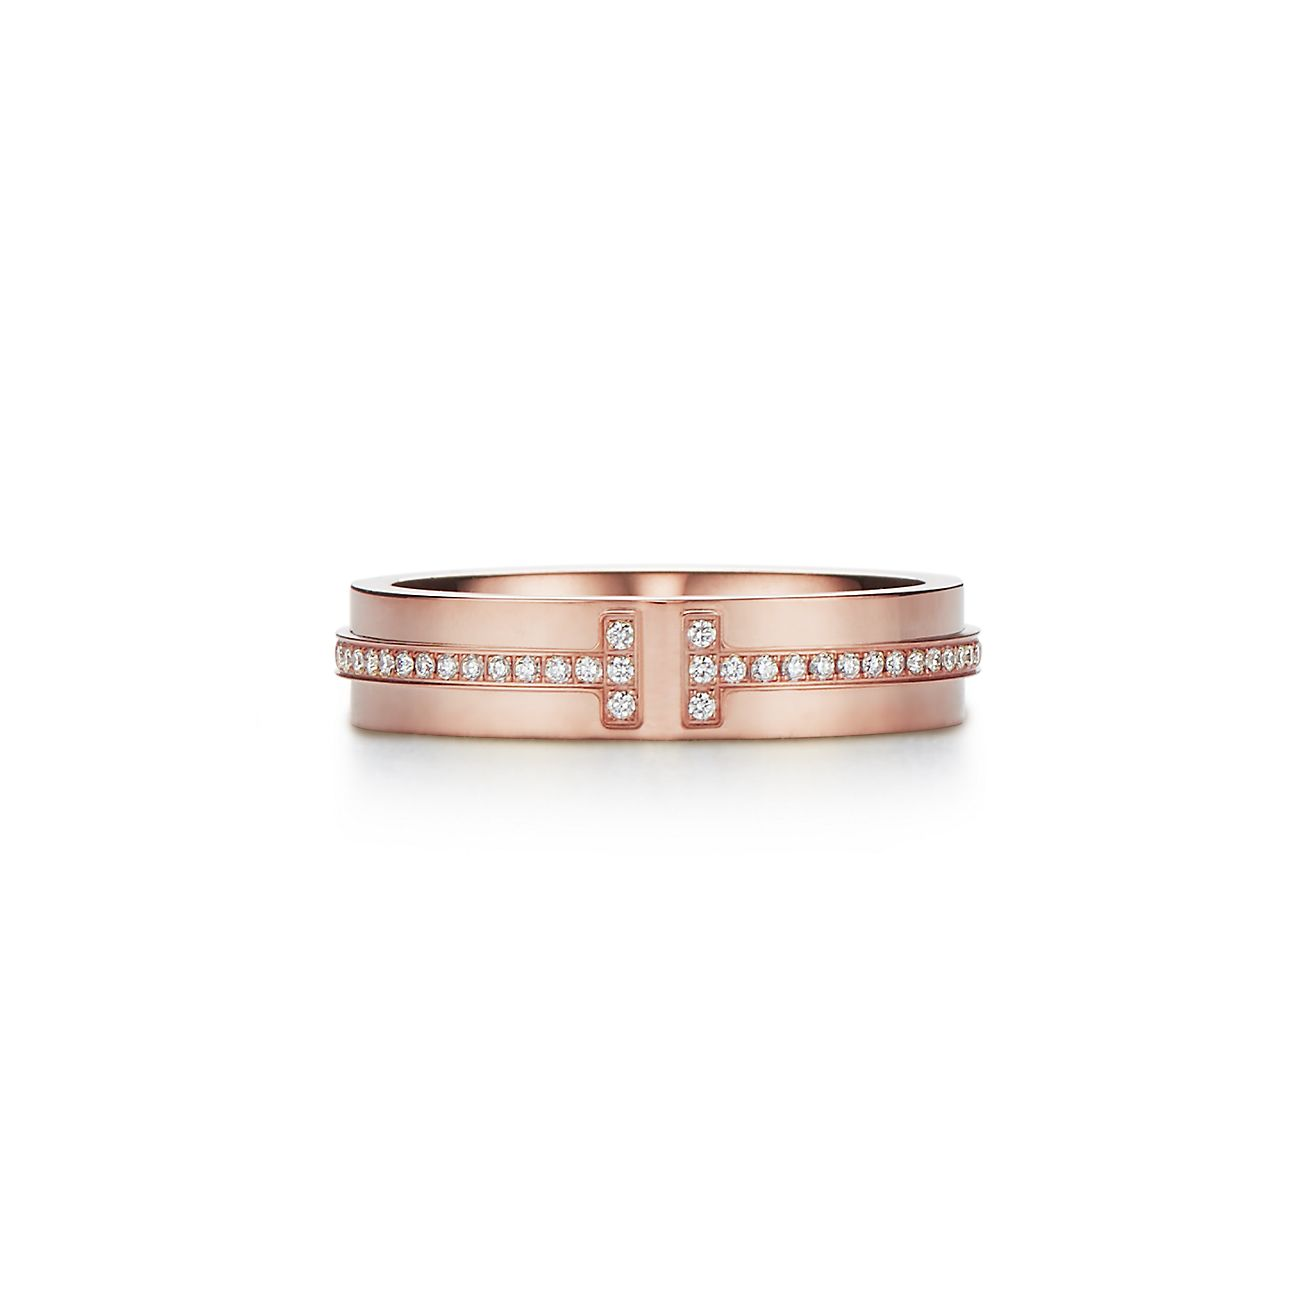 New Tiffany T Two Narrow Ring In 18k Rose Gold With Diamonds